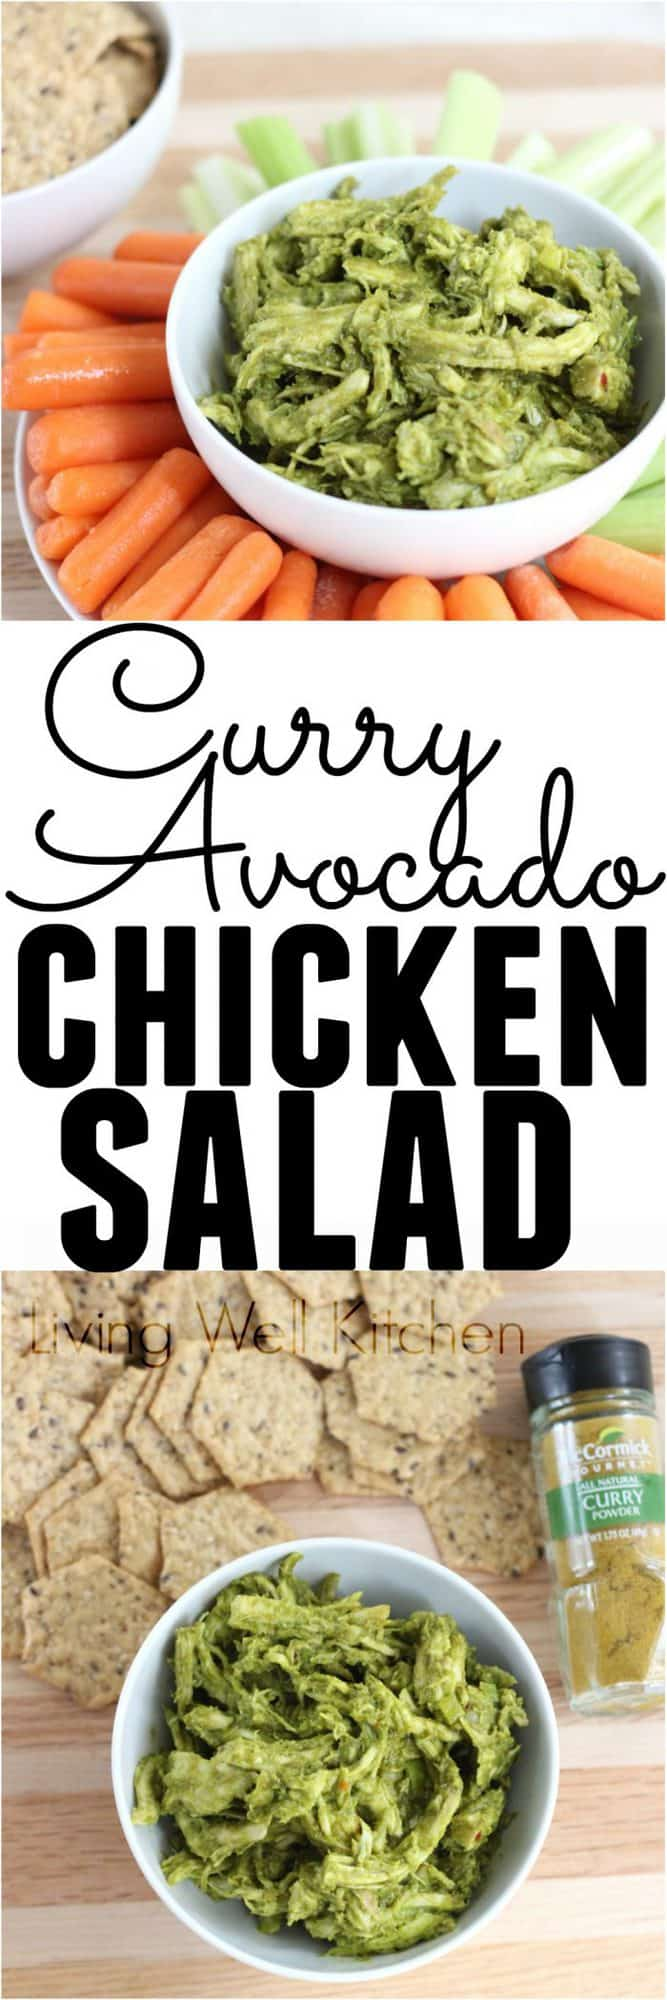 Avocado and curry powder come together to make this tasty chicken salad that is free of dairy, gluten, eggs, soy, and nuts. This Curry Avocado Chicken Salad recipe is great for a healthy, high protein snack, lunch, or light dinner!